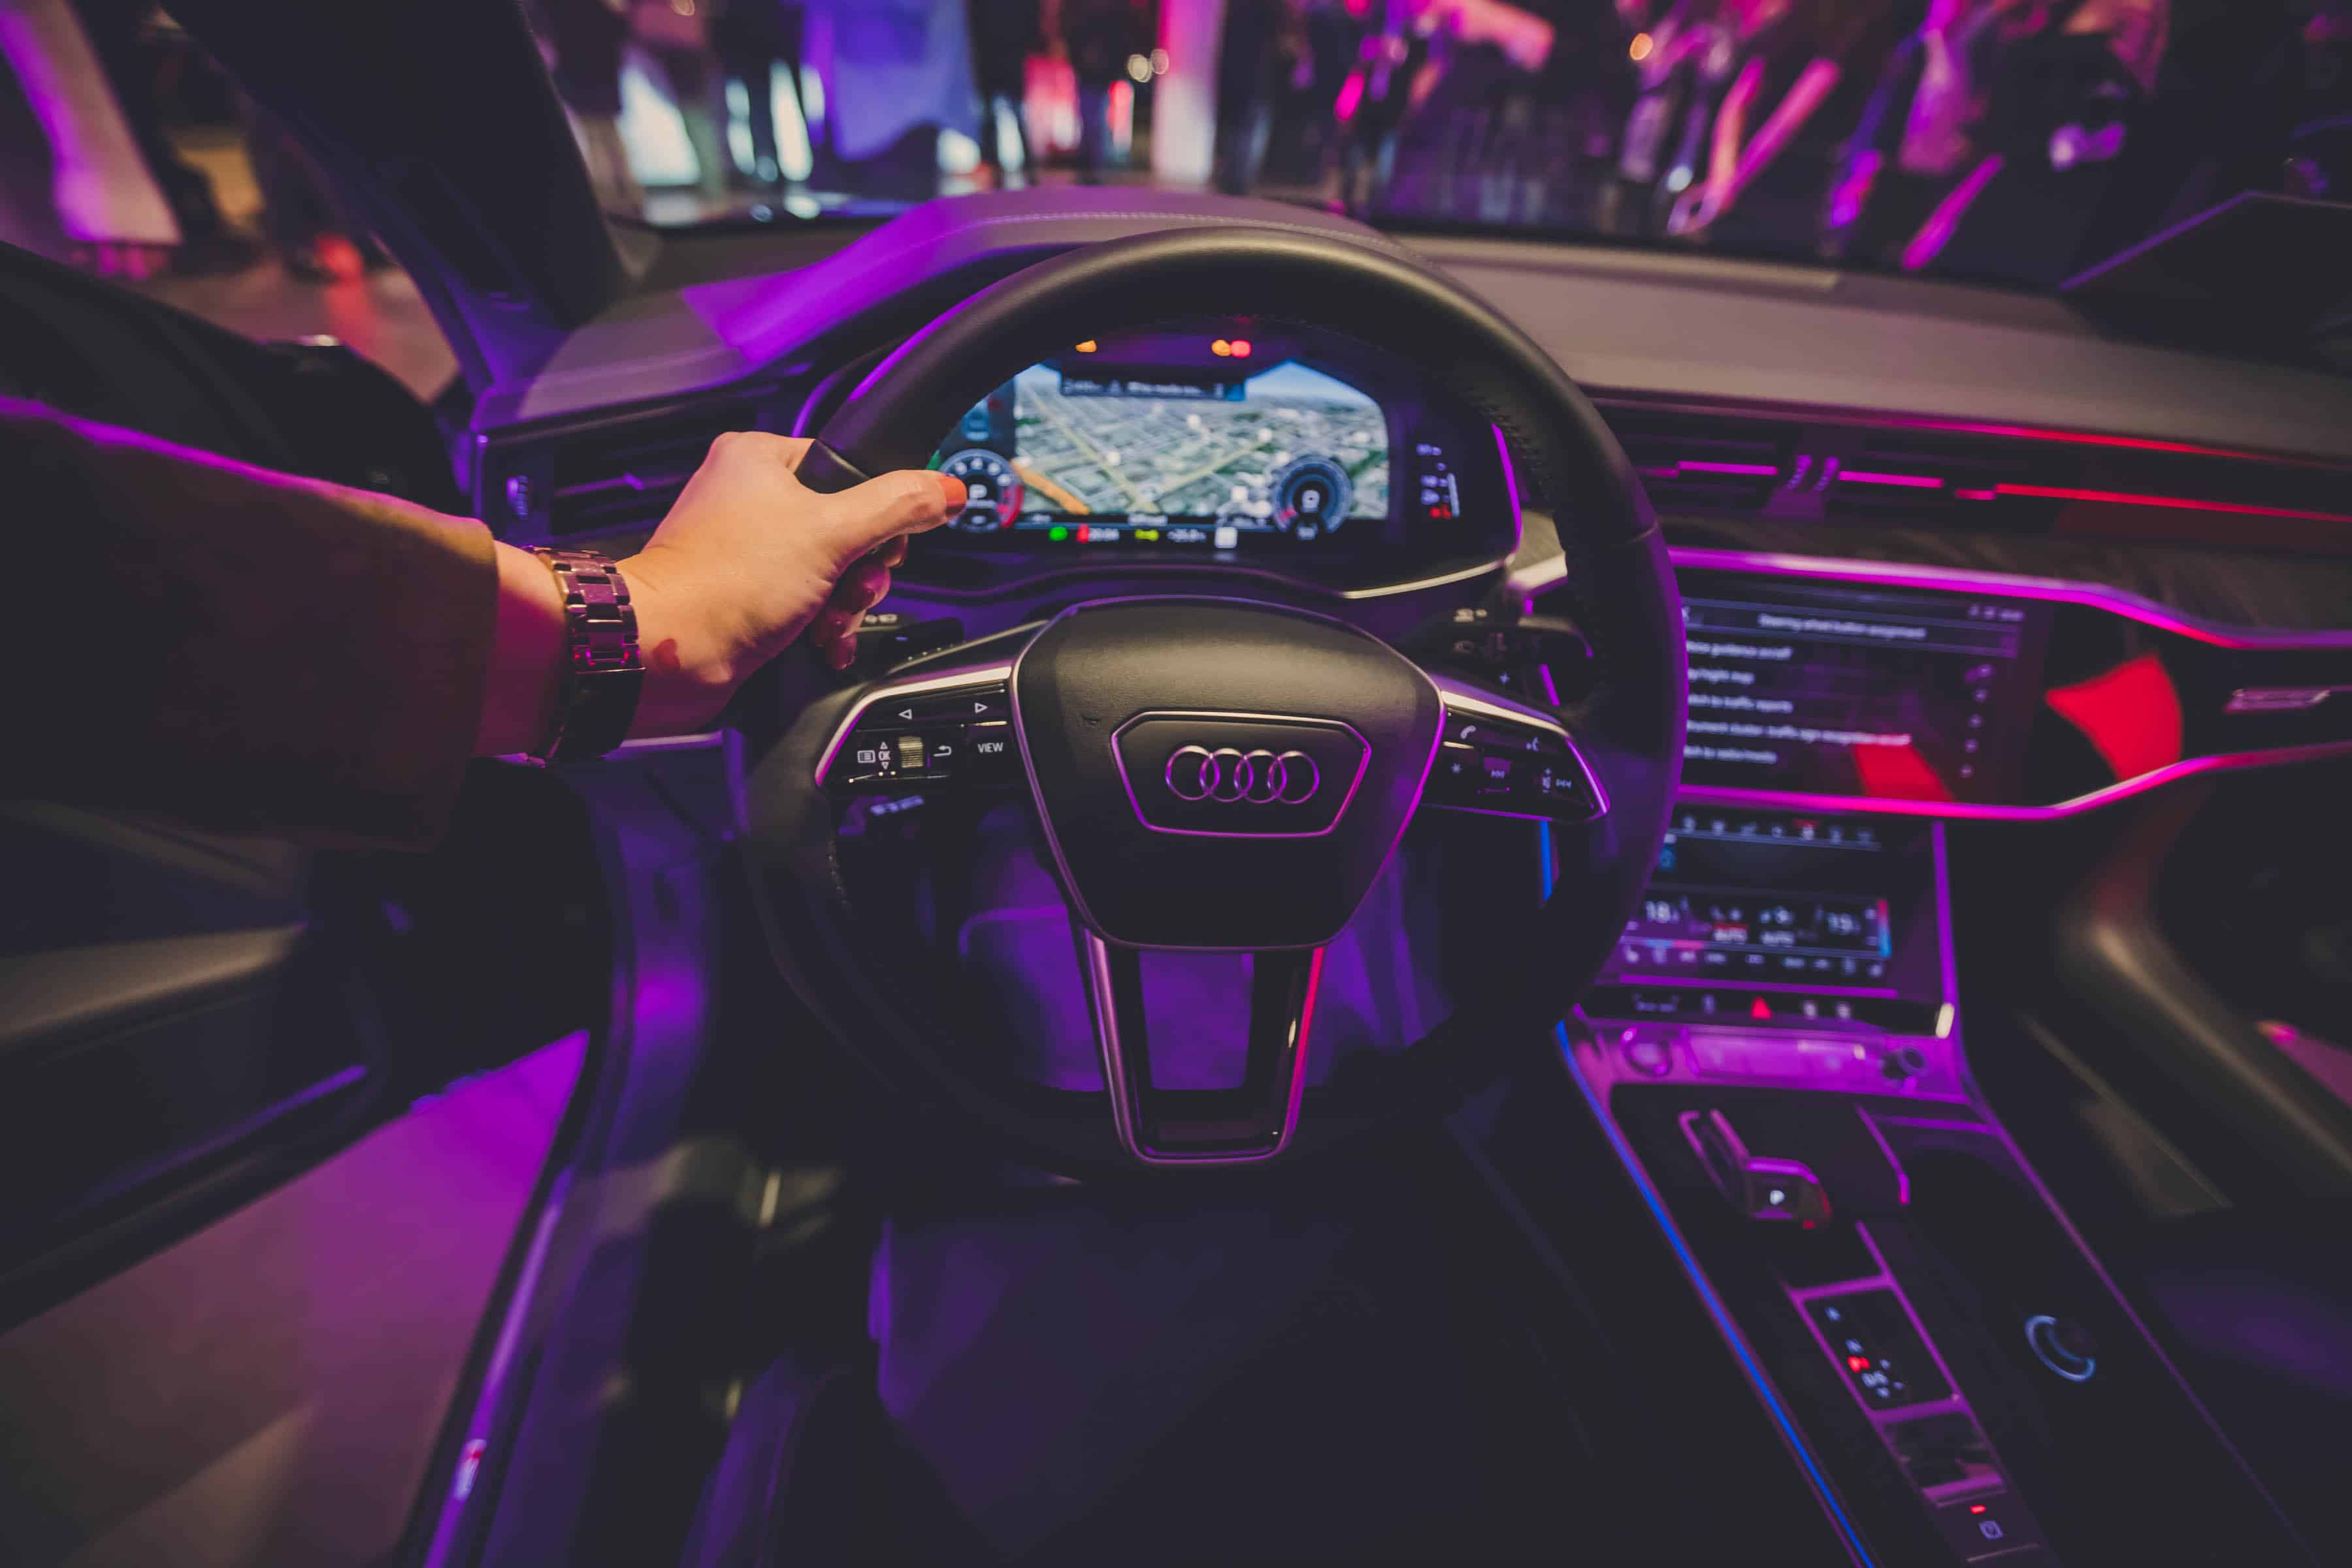 Open Road Audi, Unmask Perfection, 2019 Launch Event, Burnaby, Vancouver, BC, Luxury Cars, Vancity, YVR, 604, BC, tanis sullivan, Christian Chia, Helen Siwak, EcoLuxLuv, Luxury Lifestyle, Luxury Cars,